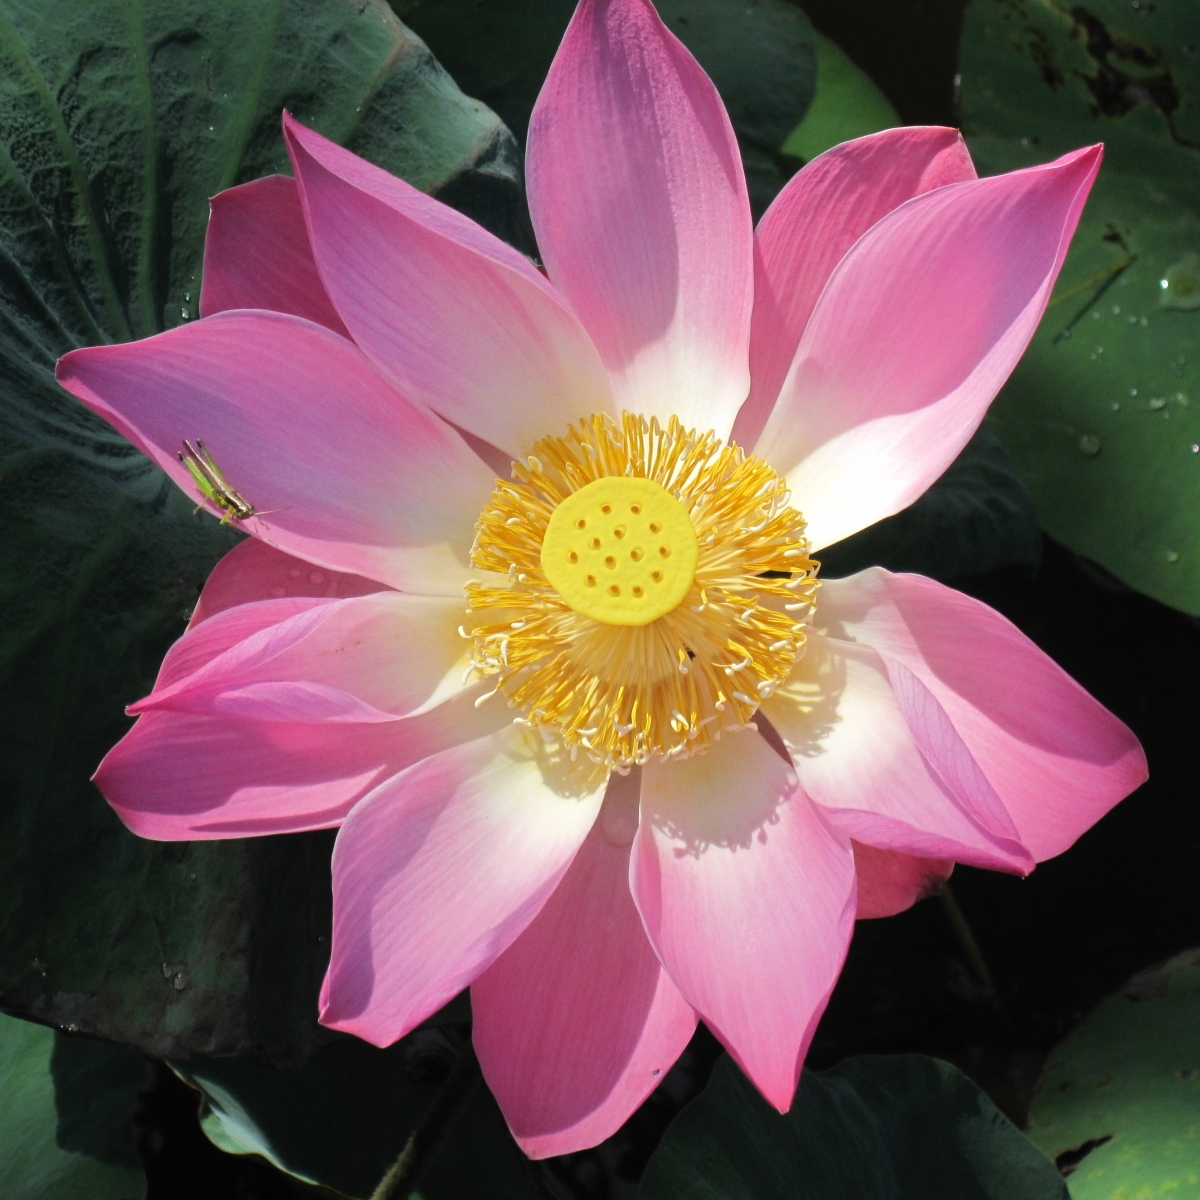 The Lotus An Exquisite Flower And Symbol Of Faith Gallivance